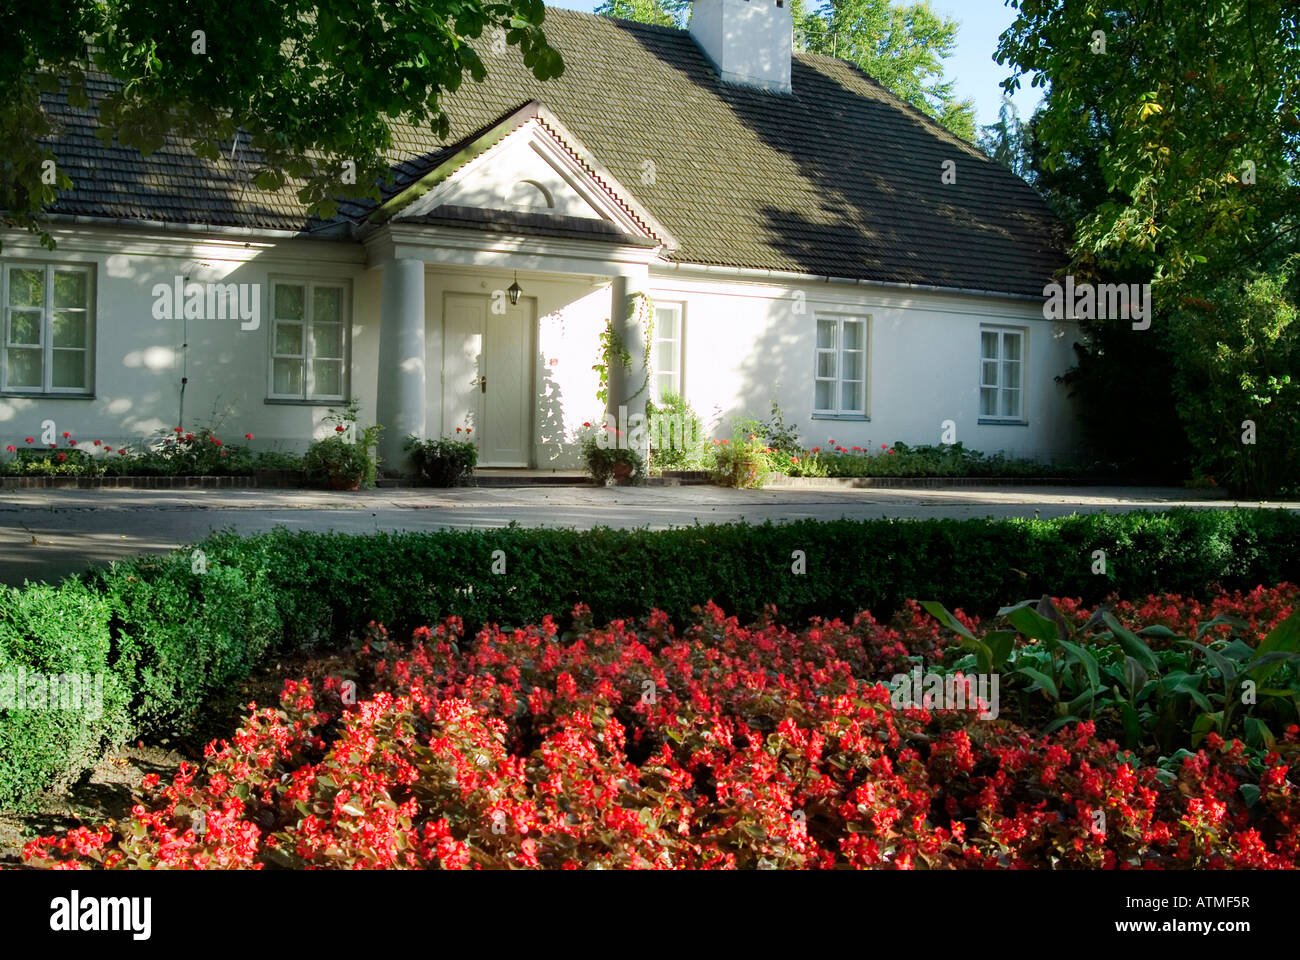 Museum of Frederic Chopin in Zelazowa Wola - Stock Image